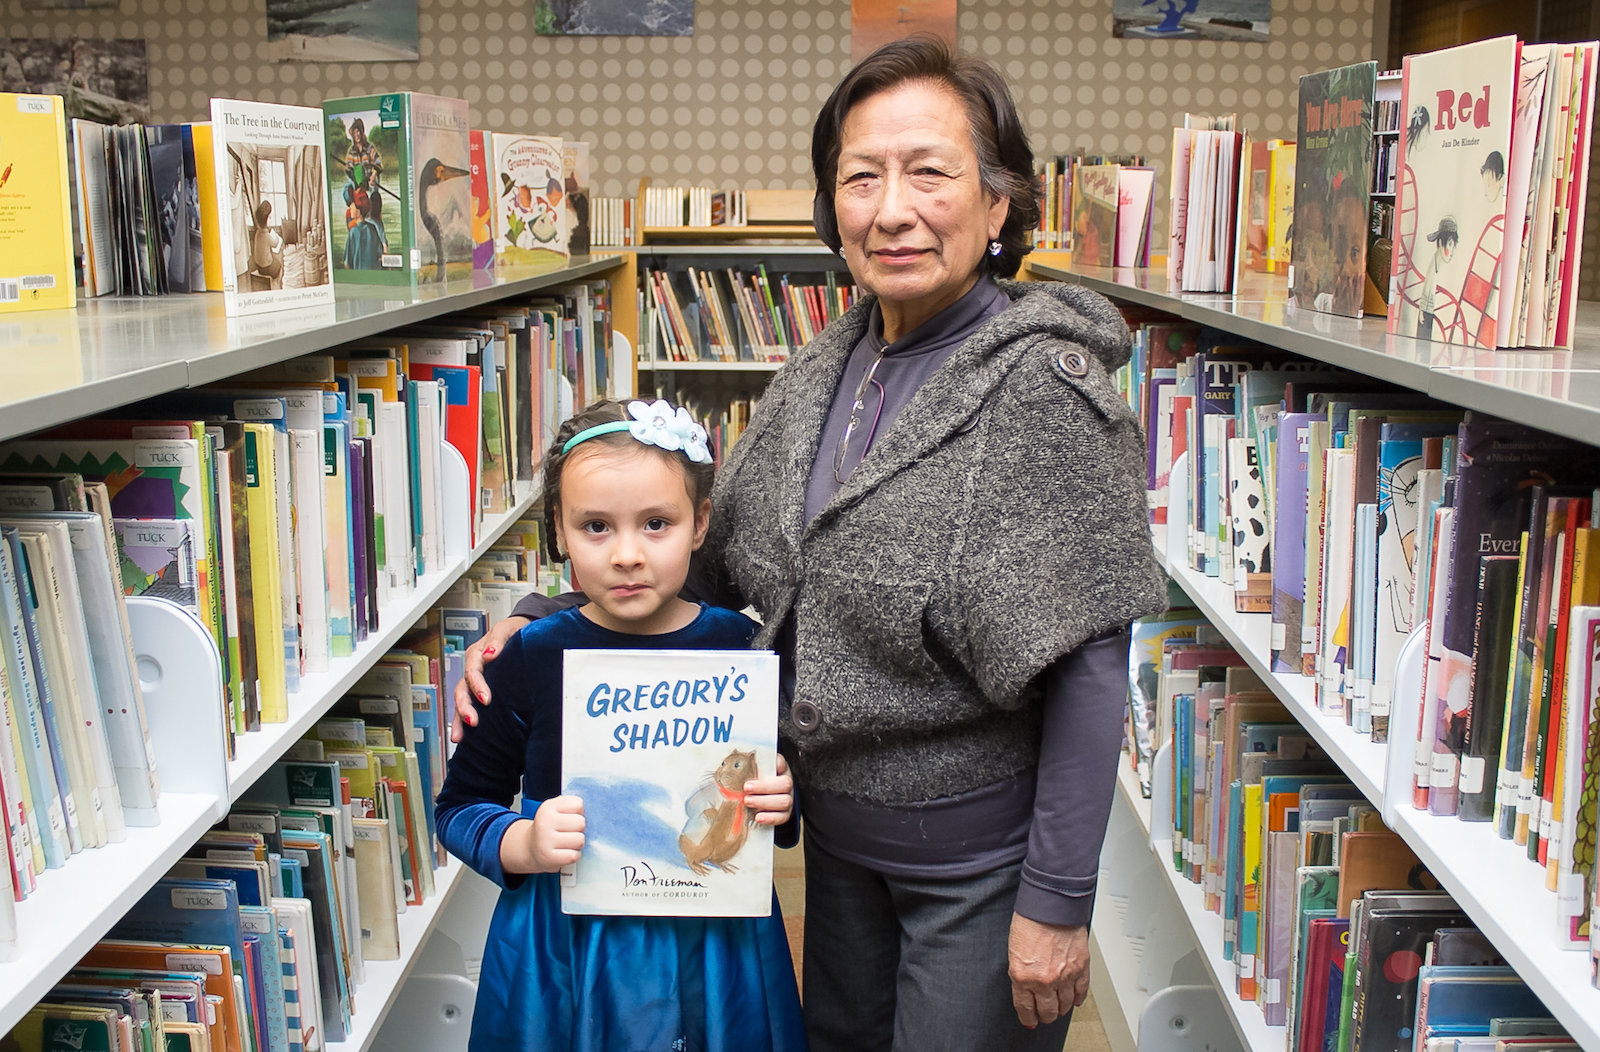 grandmother and granddaughter at library